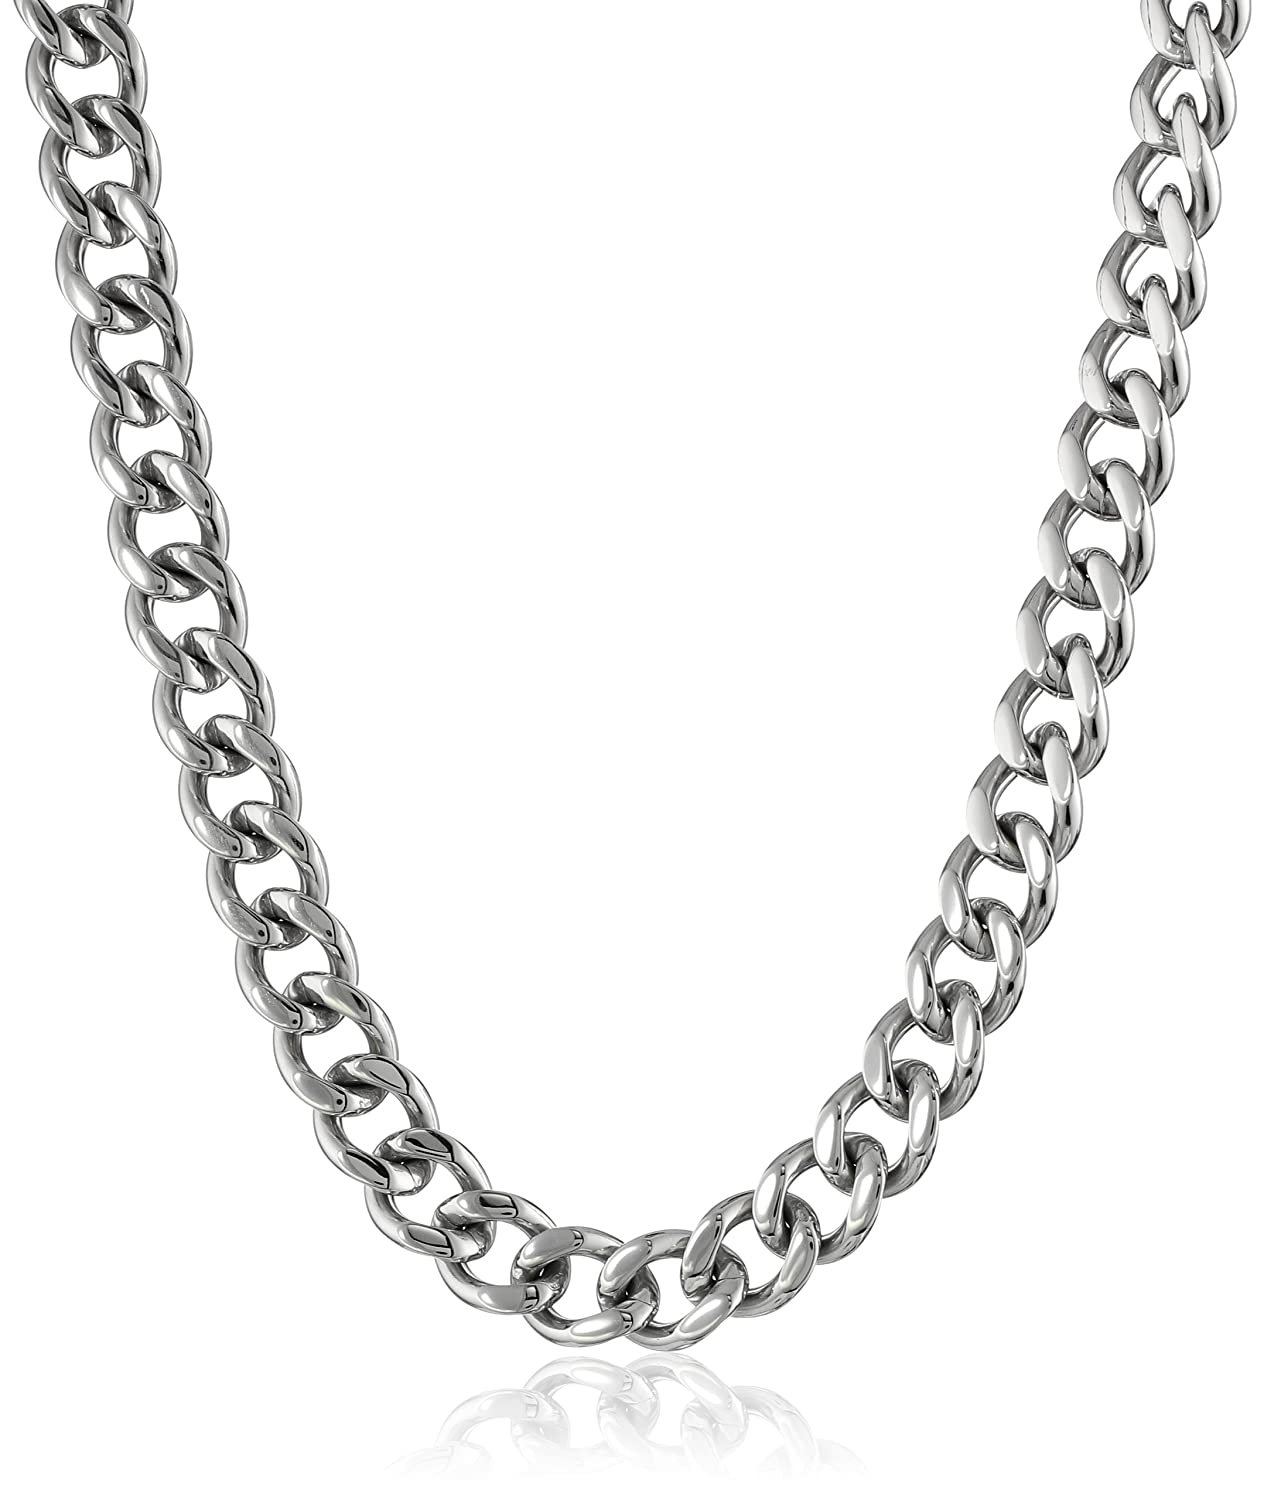 Mens stainless steel curb chain necklace 20 amazon mozeypictures